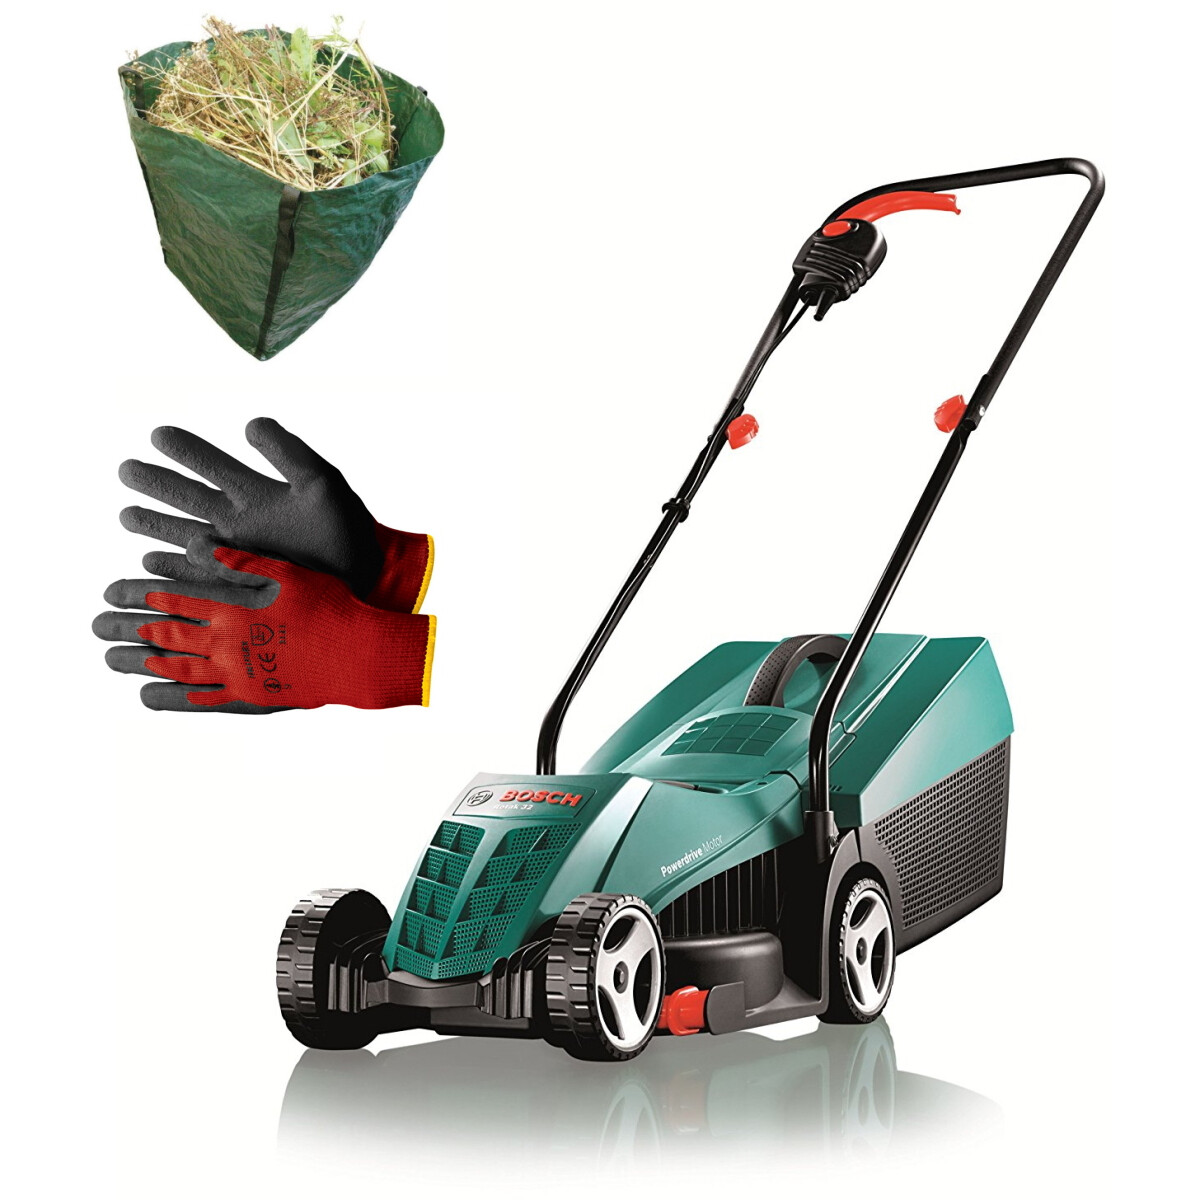 Bosch Rotak 32 R with Gloves and Garden Sack 240V 1100W 32cm Lawn Mower